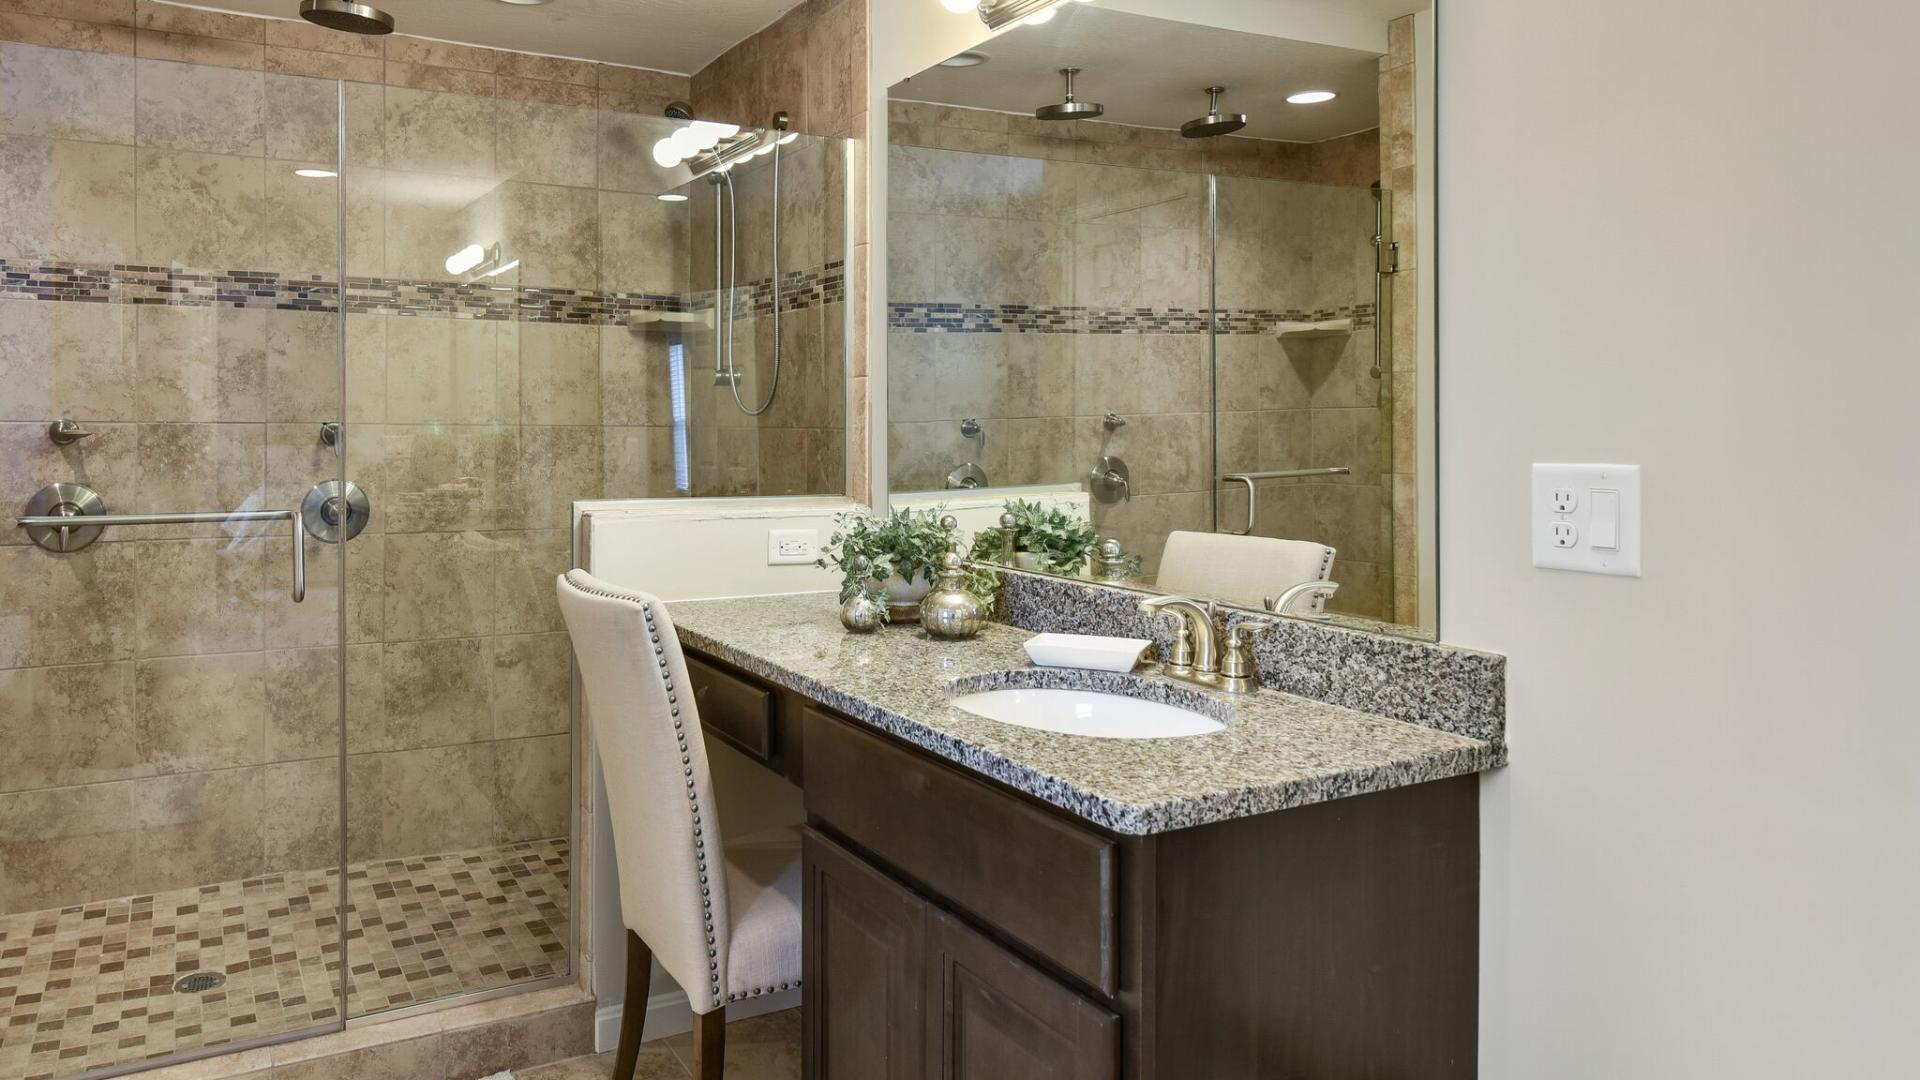 Bathroom featured in the Birmingham By Maronda Homes in Columbus, OH